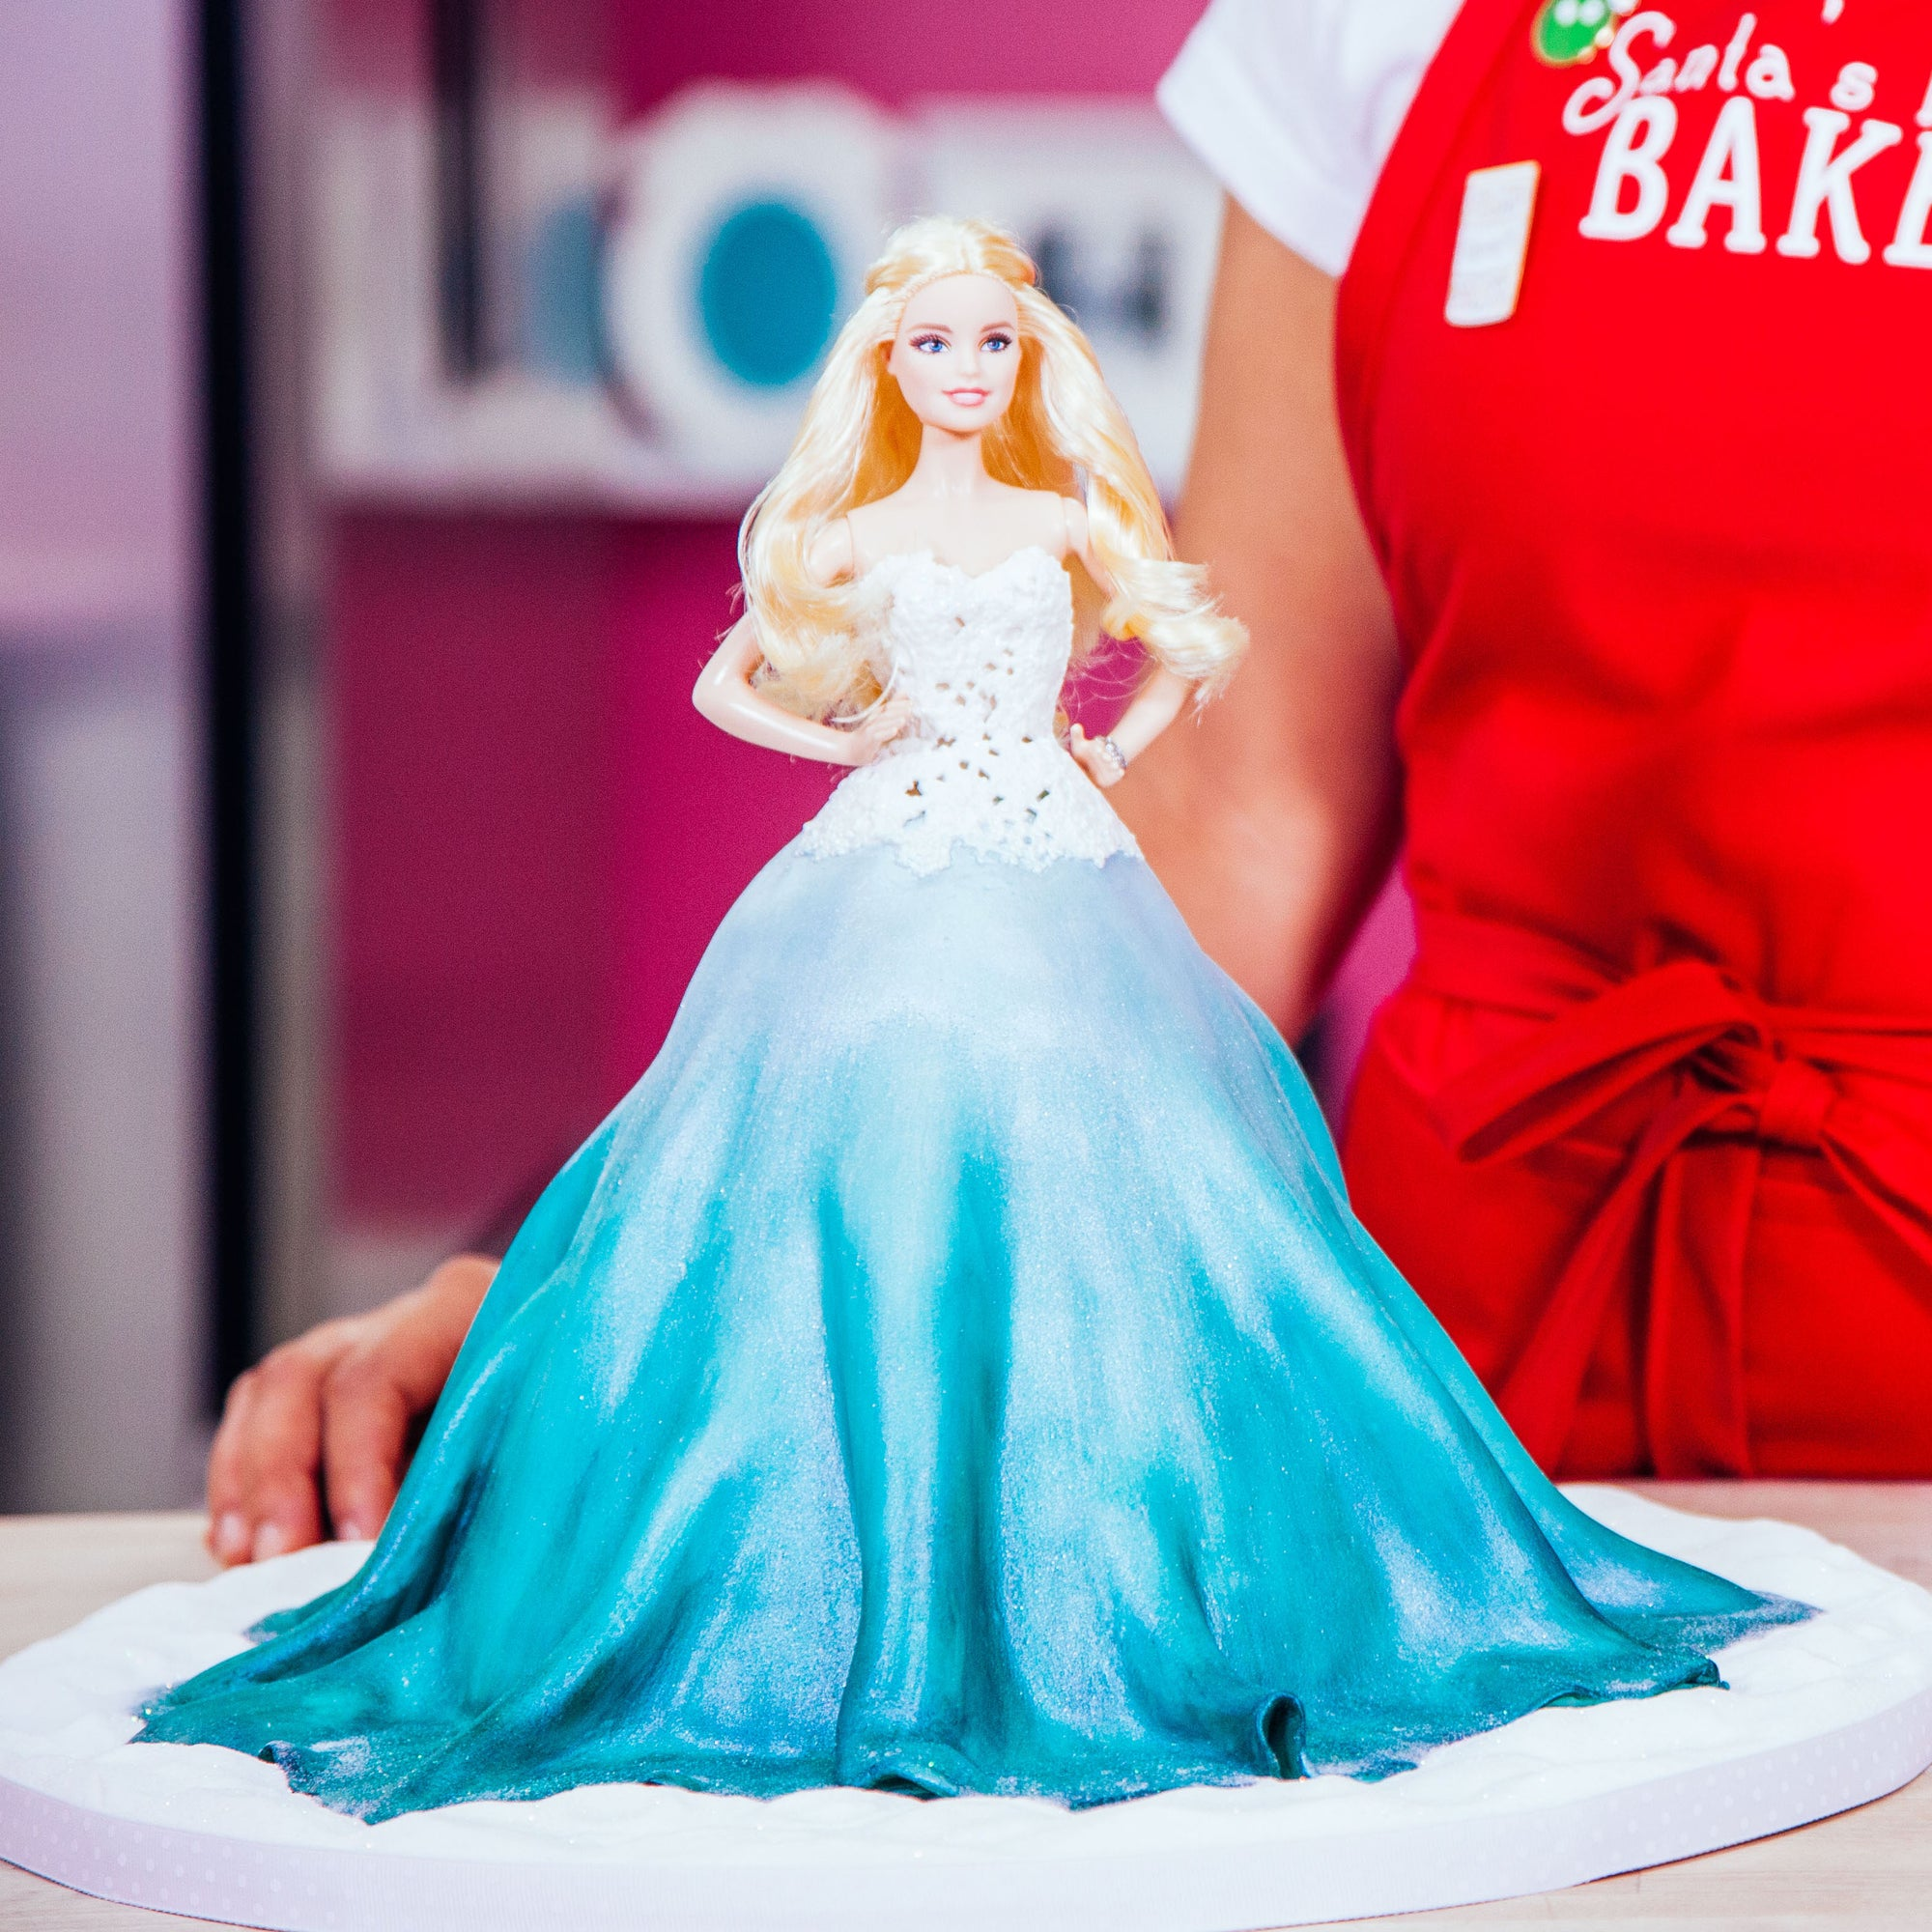 Holiday Barbie Cake